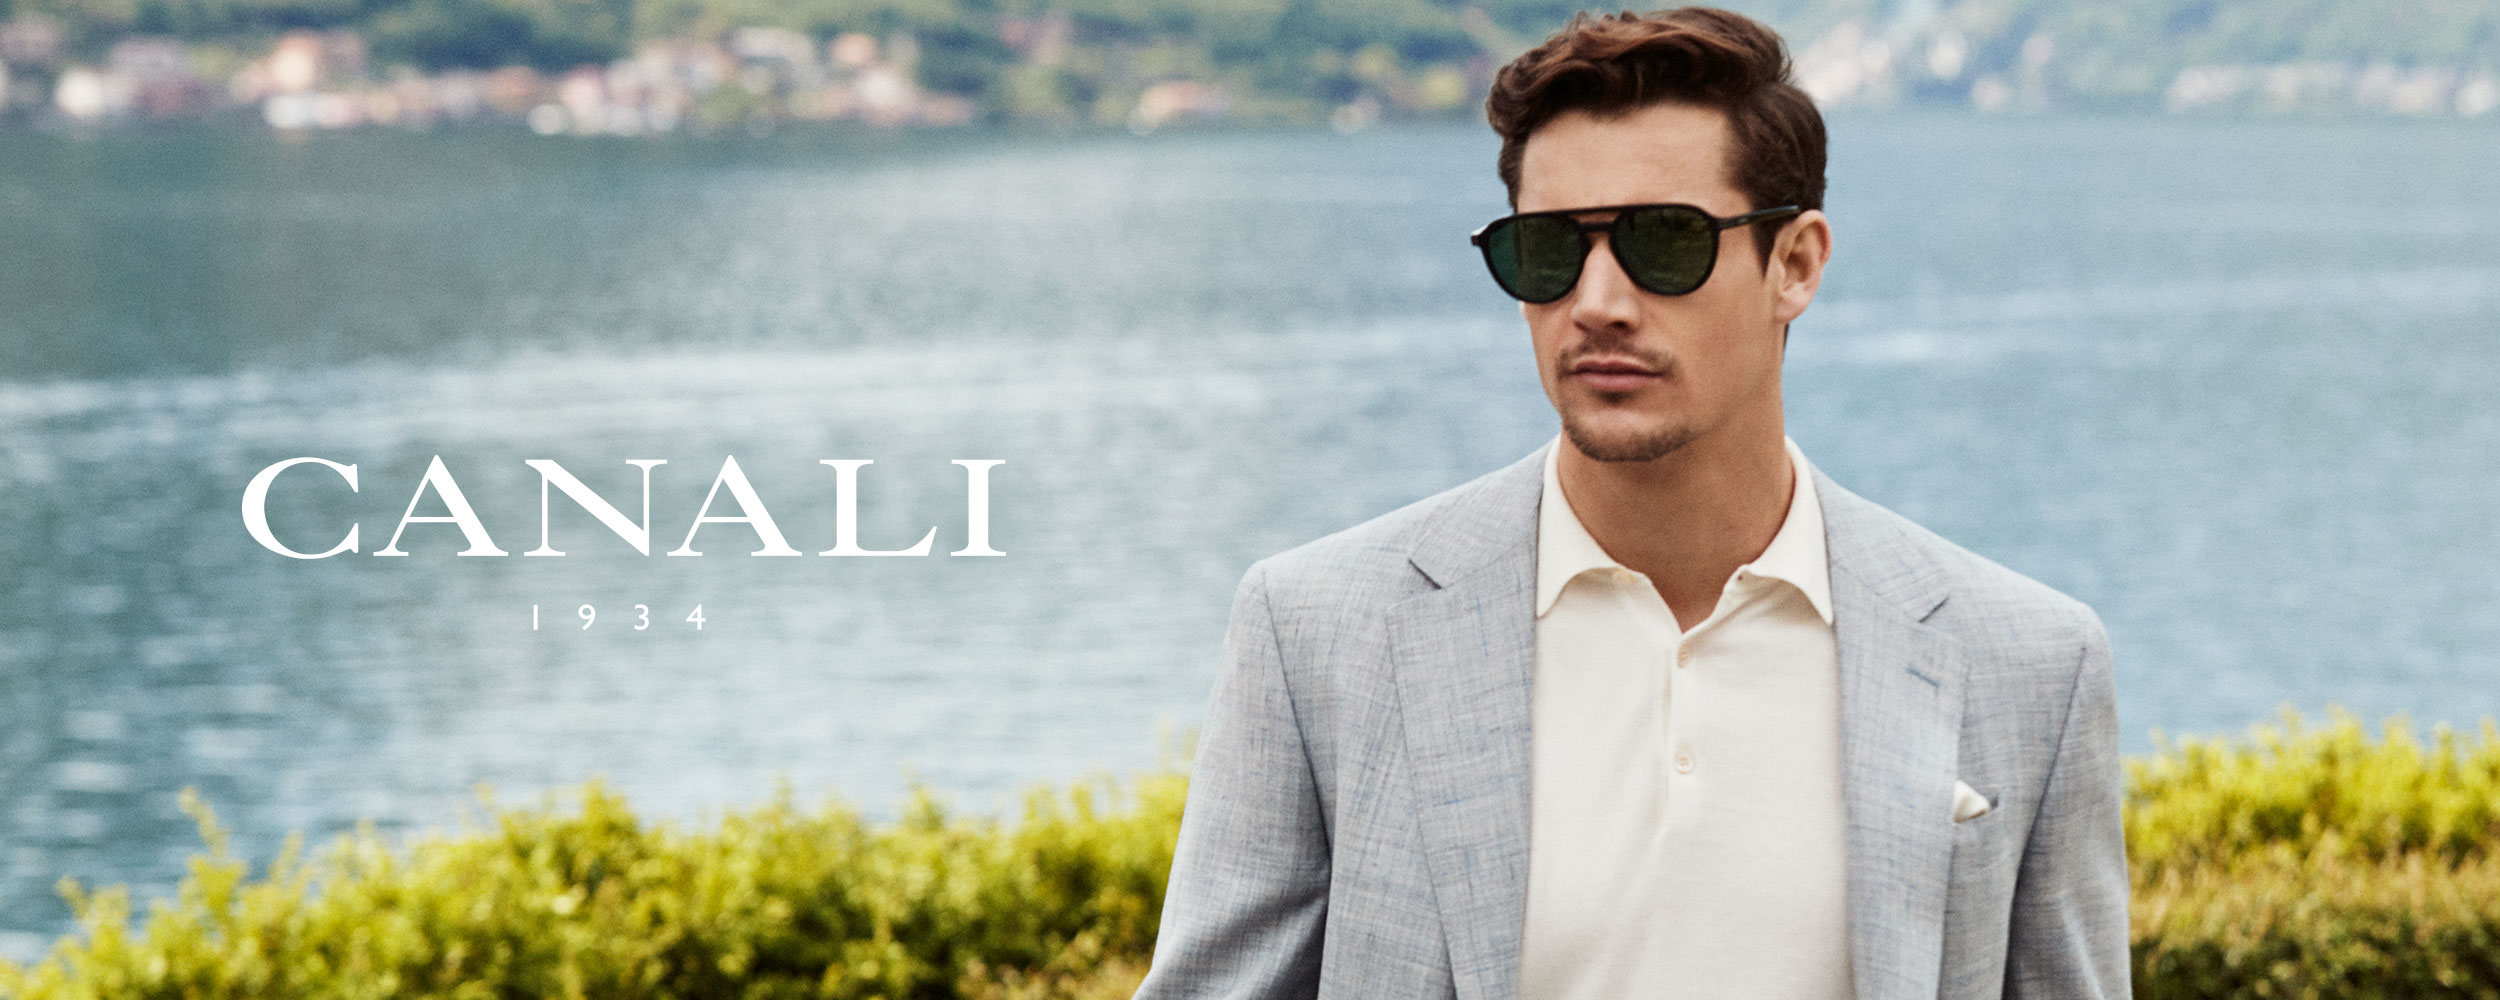 Canali collection Banner.